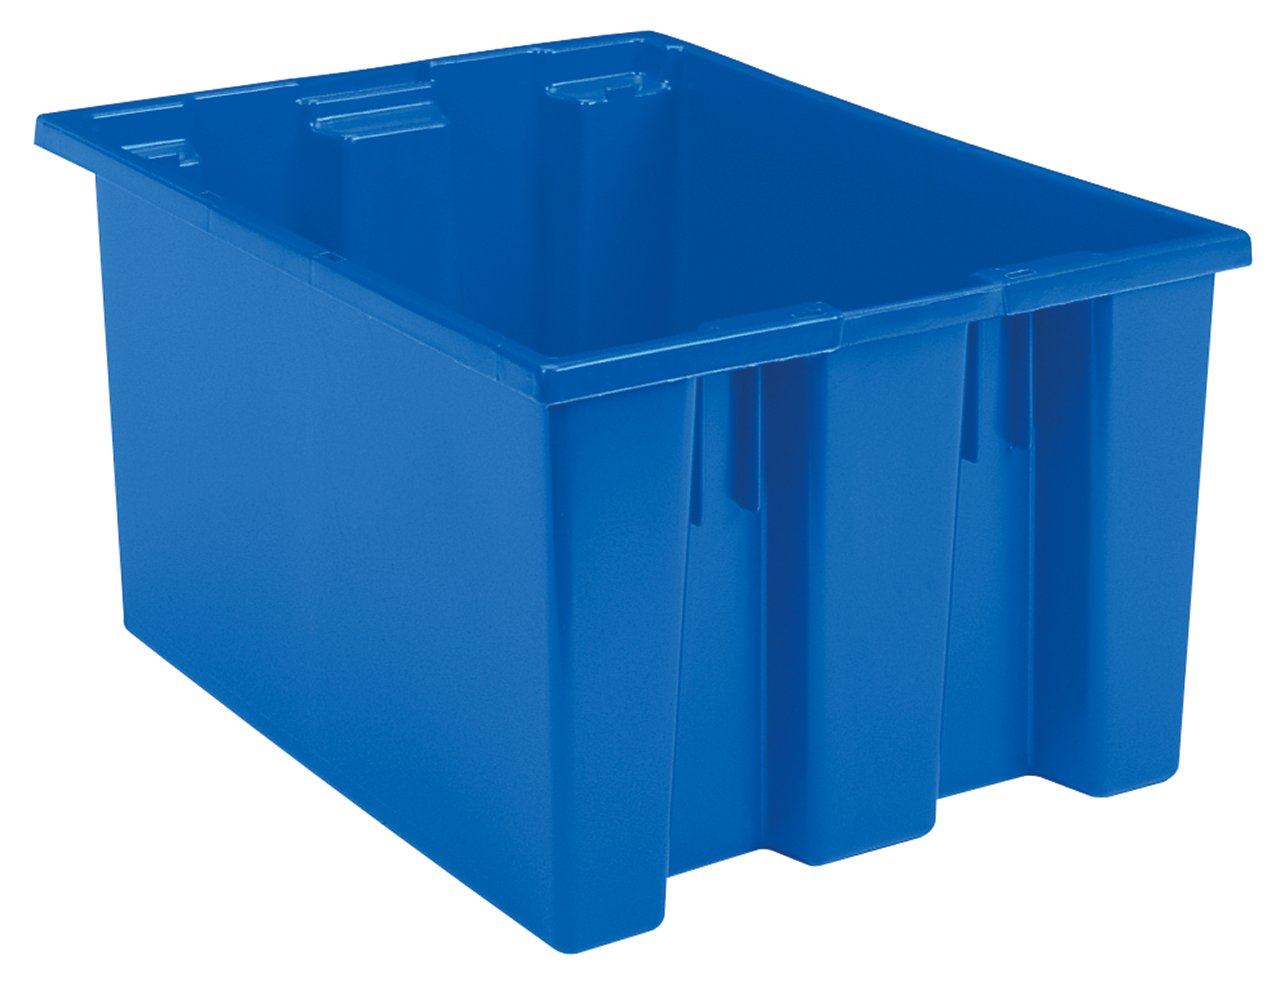 Akro-Mils 35300 Nest and Stack Plastic Storage and Distribution Tote, 29.5-Inch L by 19.5-Inch W by 15-Inch H, Blue, Case of 3